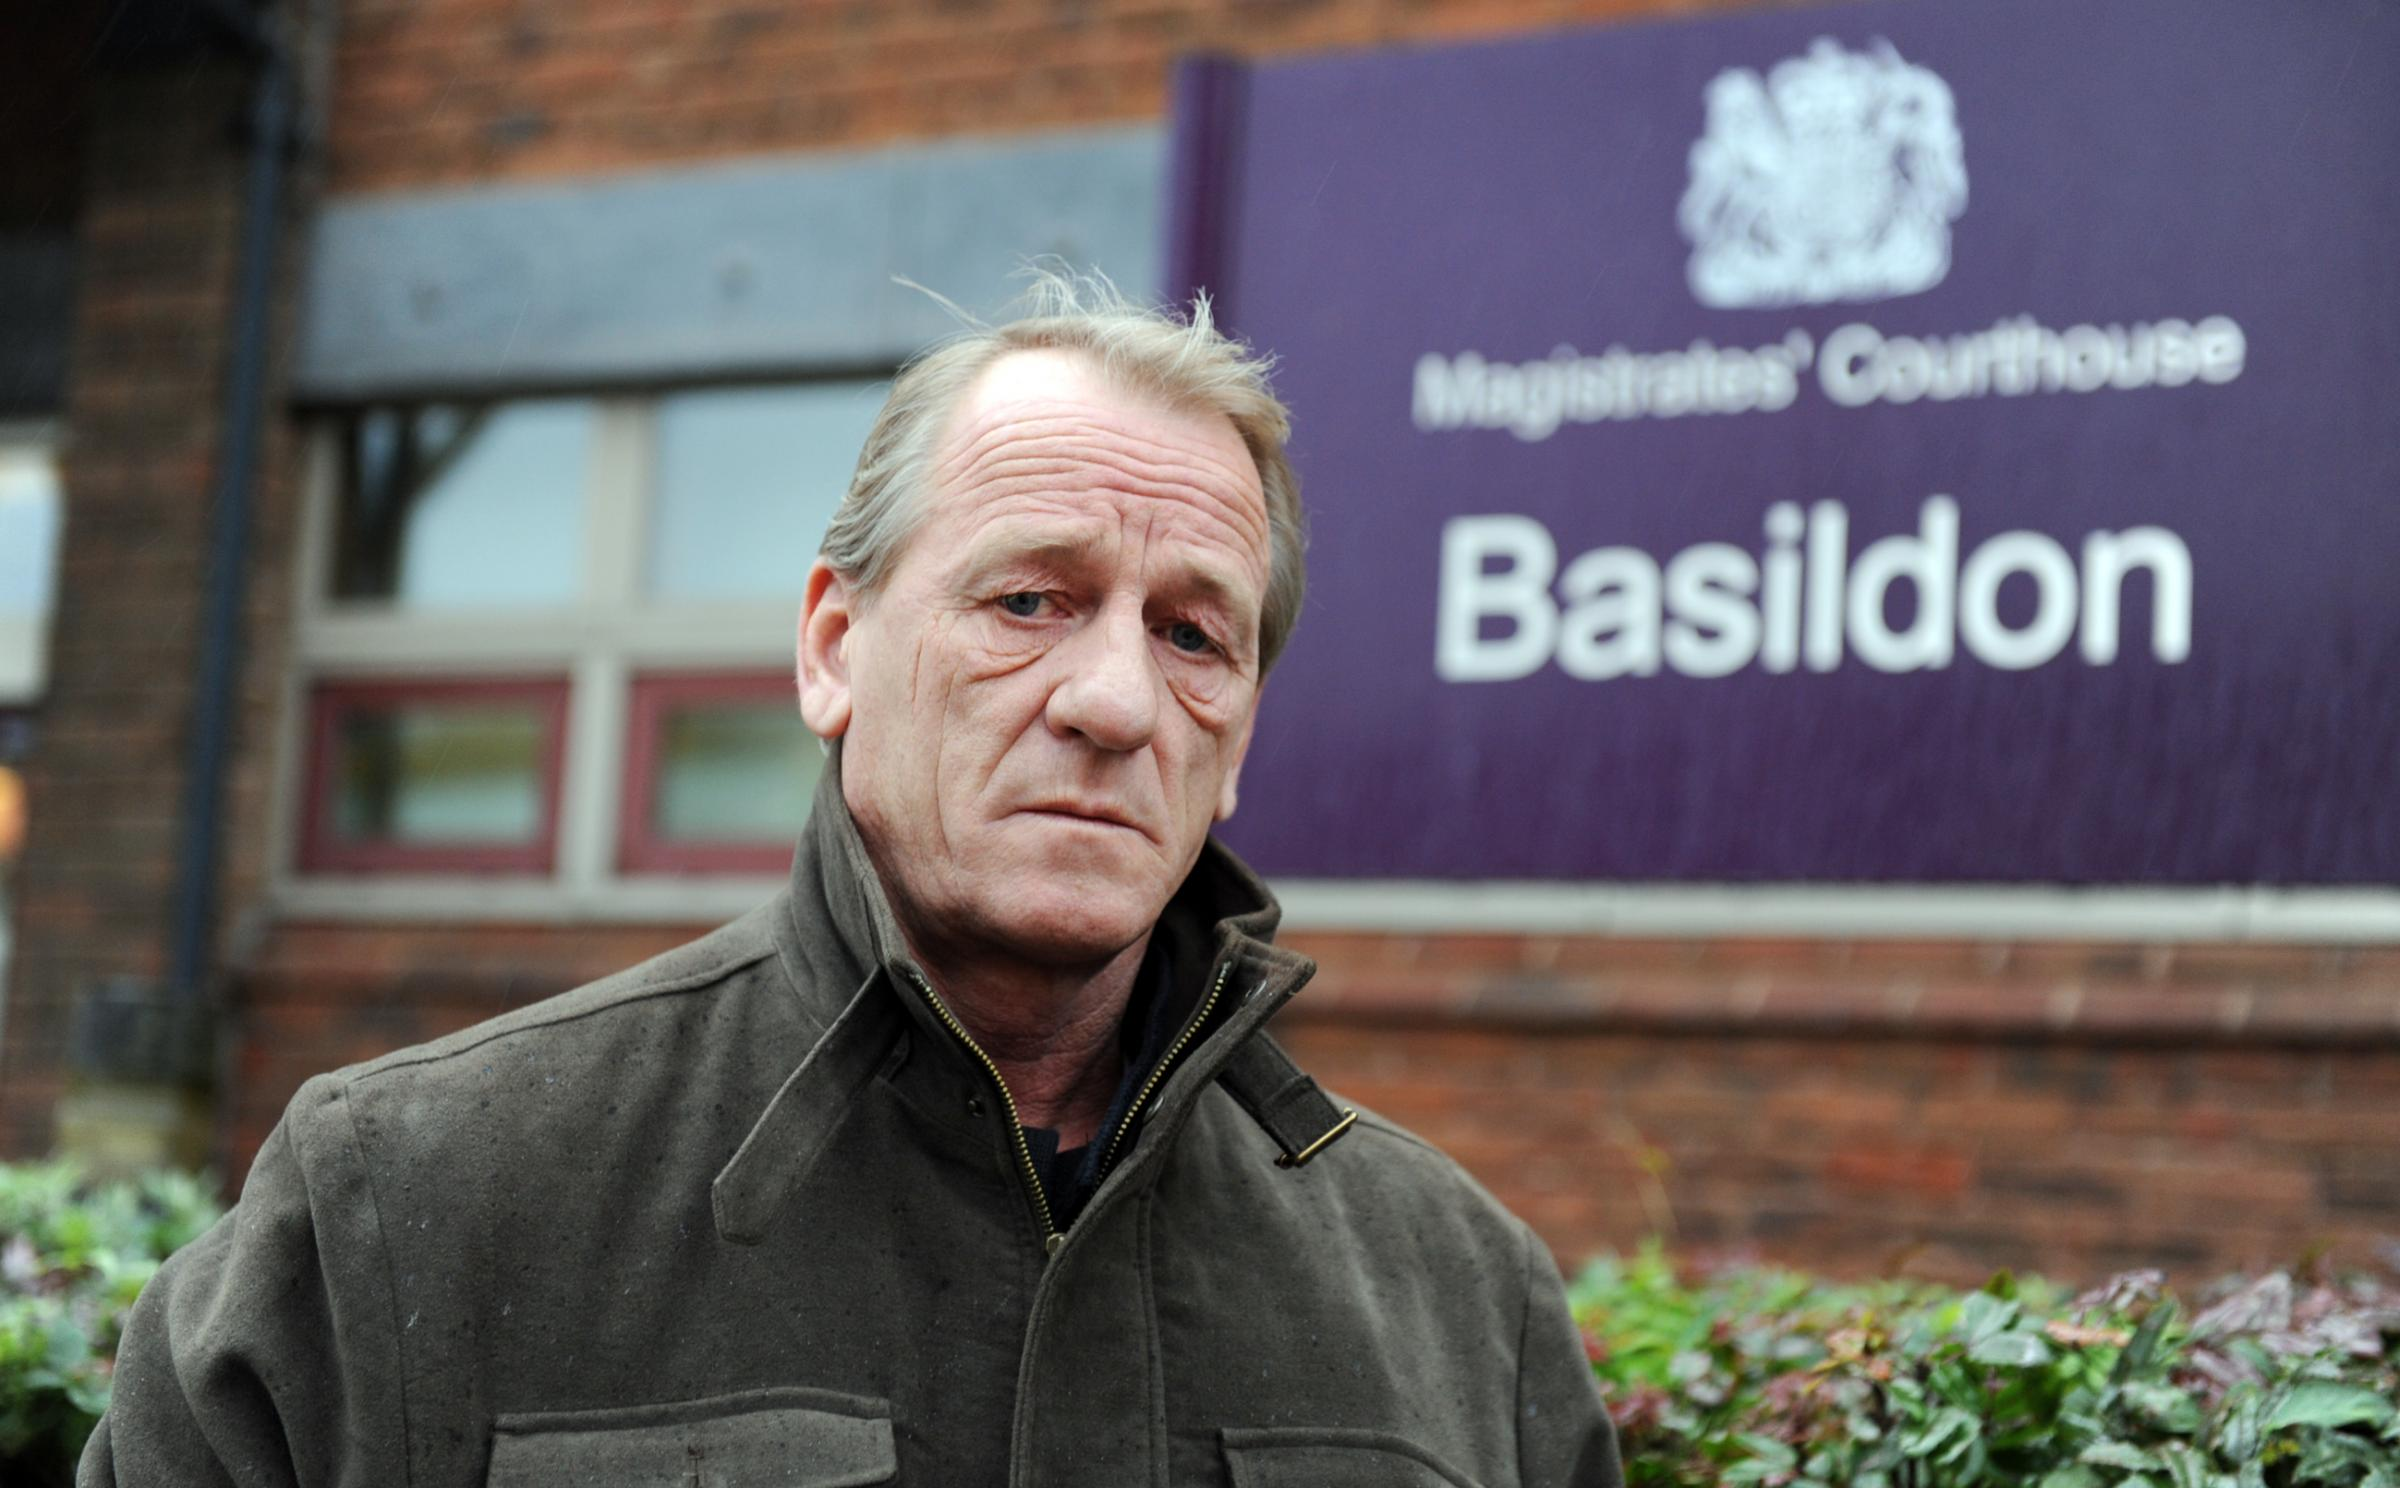 Appeal – Steve Barratt feels he was treated badly by the court